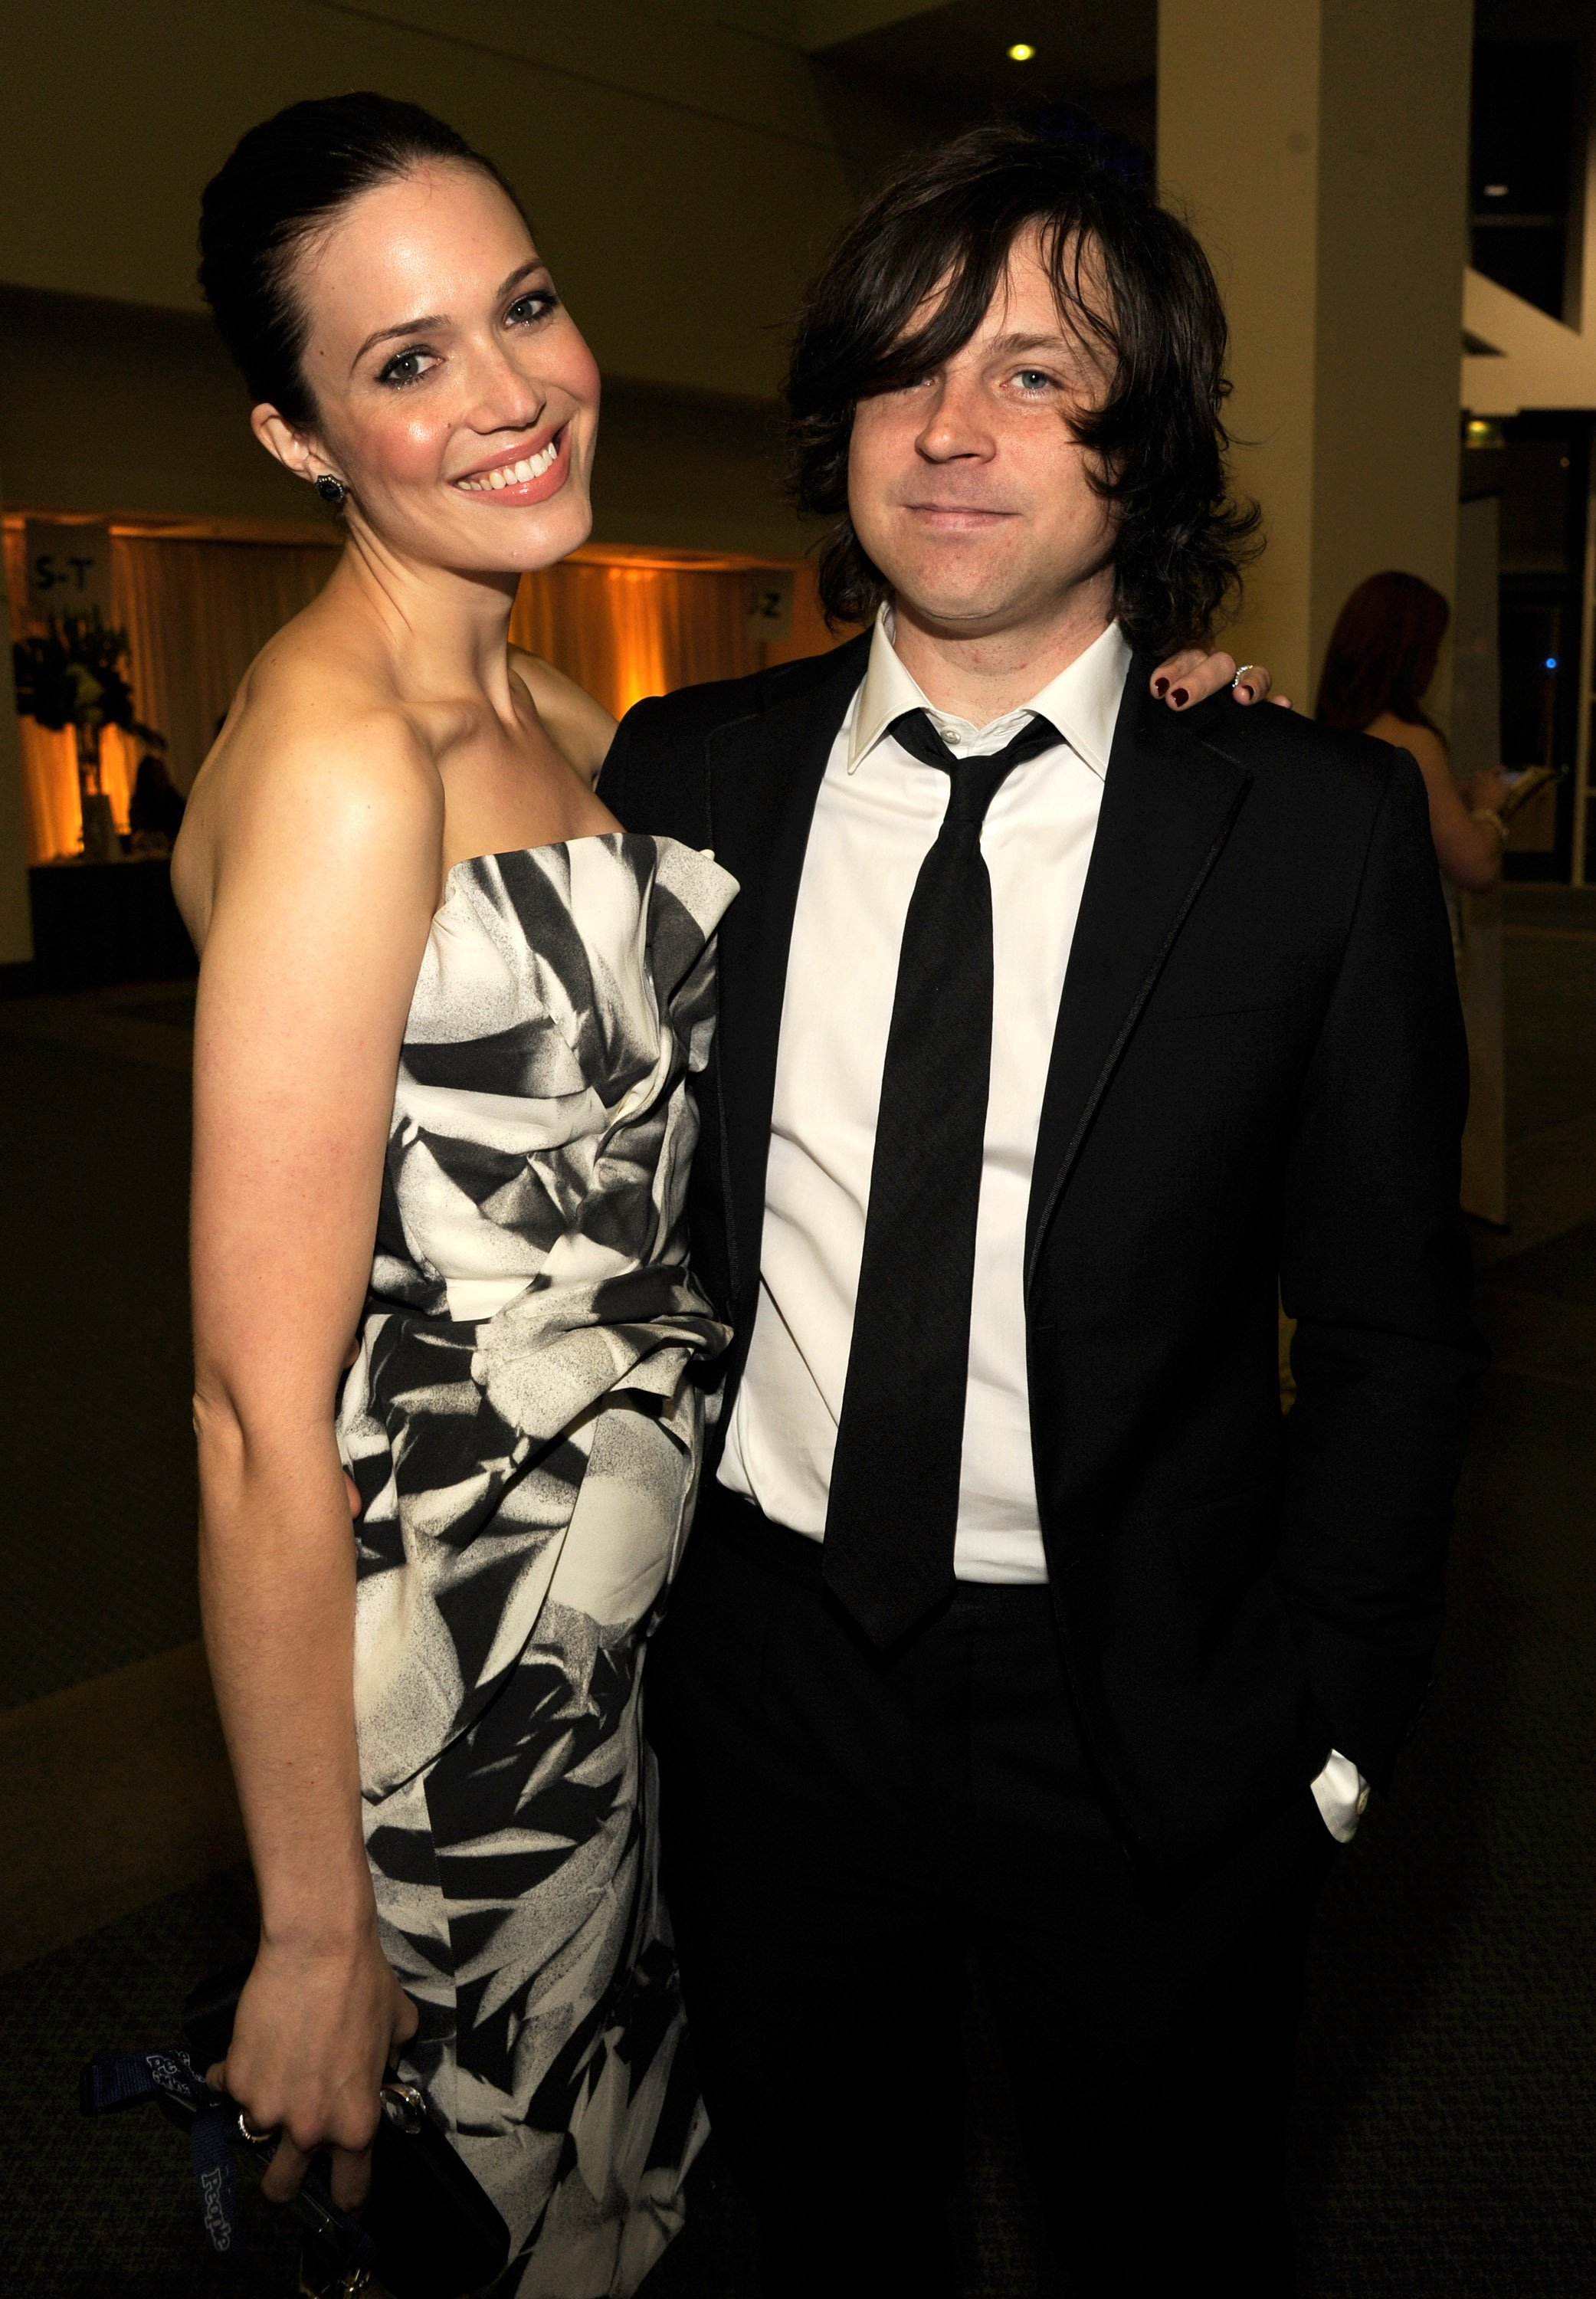 Mandy Moore alongside Ryan Adams while attending The 2012 MusiCares Person Of The Year Gala on February 10, 2012. | Photo: Getty Images.